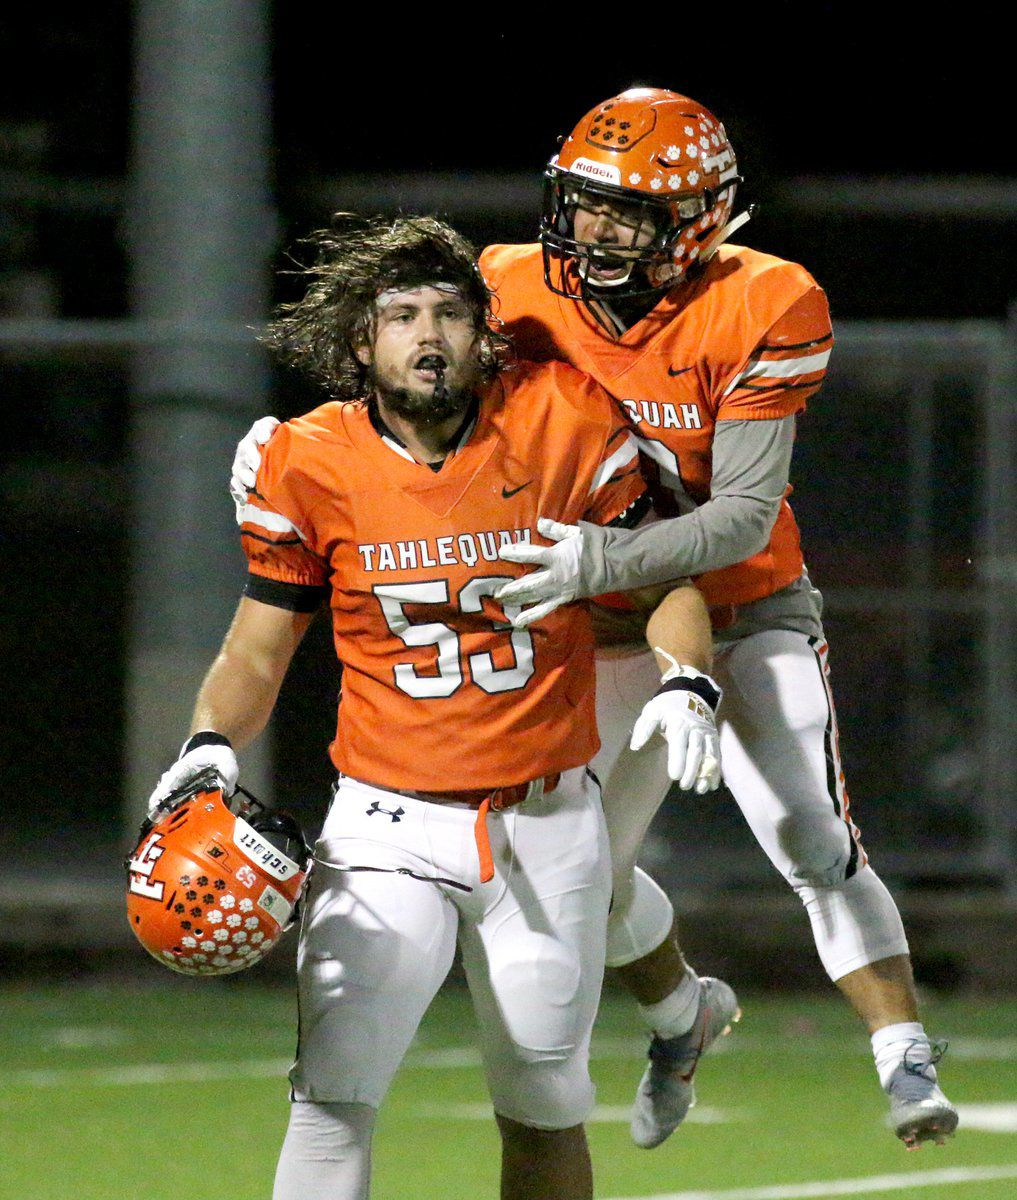 Tigers claim first district title since 1991